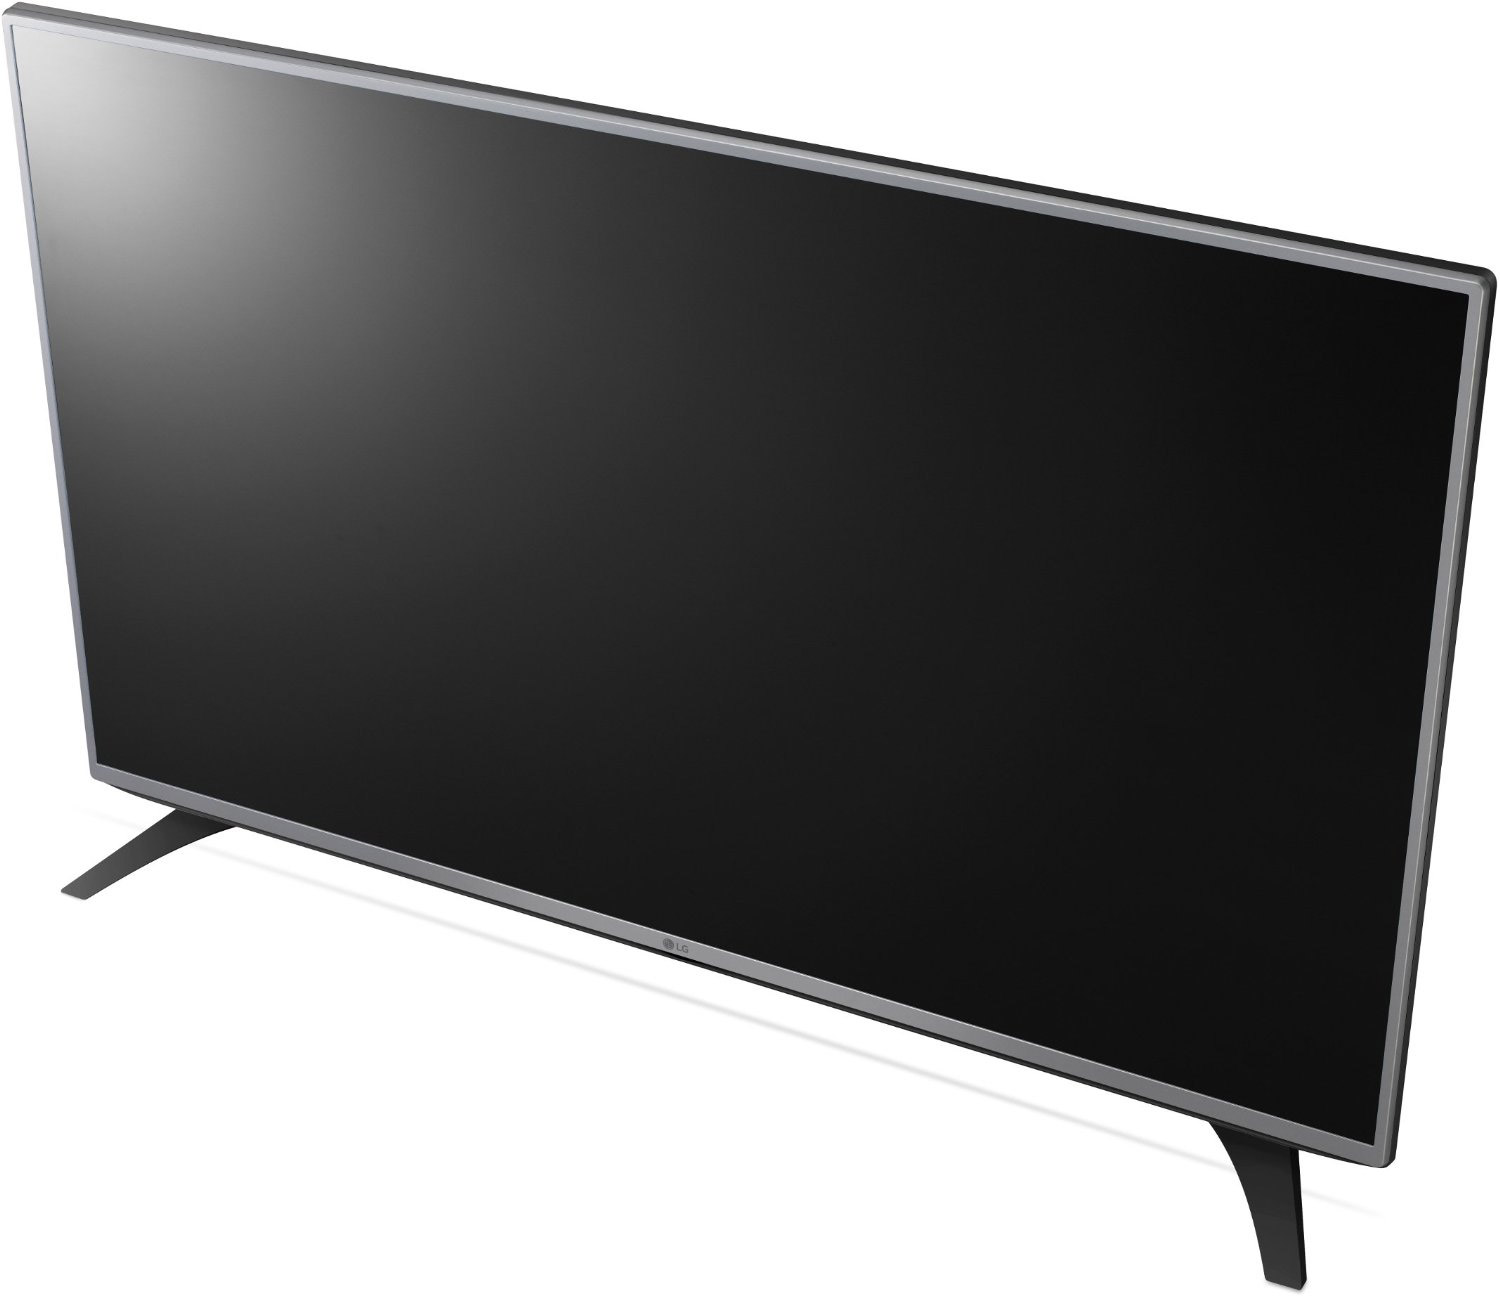 lg 49lf5400 49 125 cm full hd led tv s r lt keret grx electro outlet. Black Bedroom Furniture Sets. Home Design Ideas